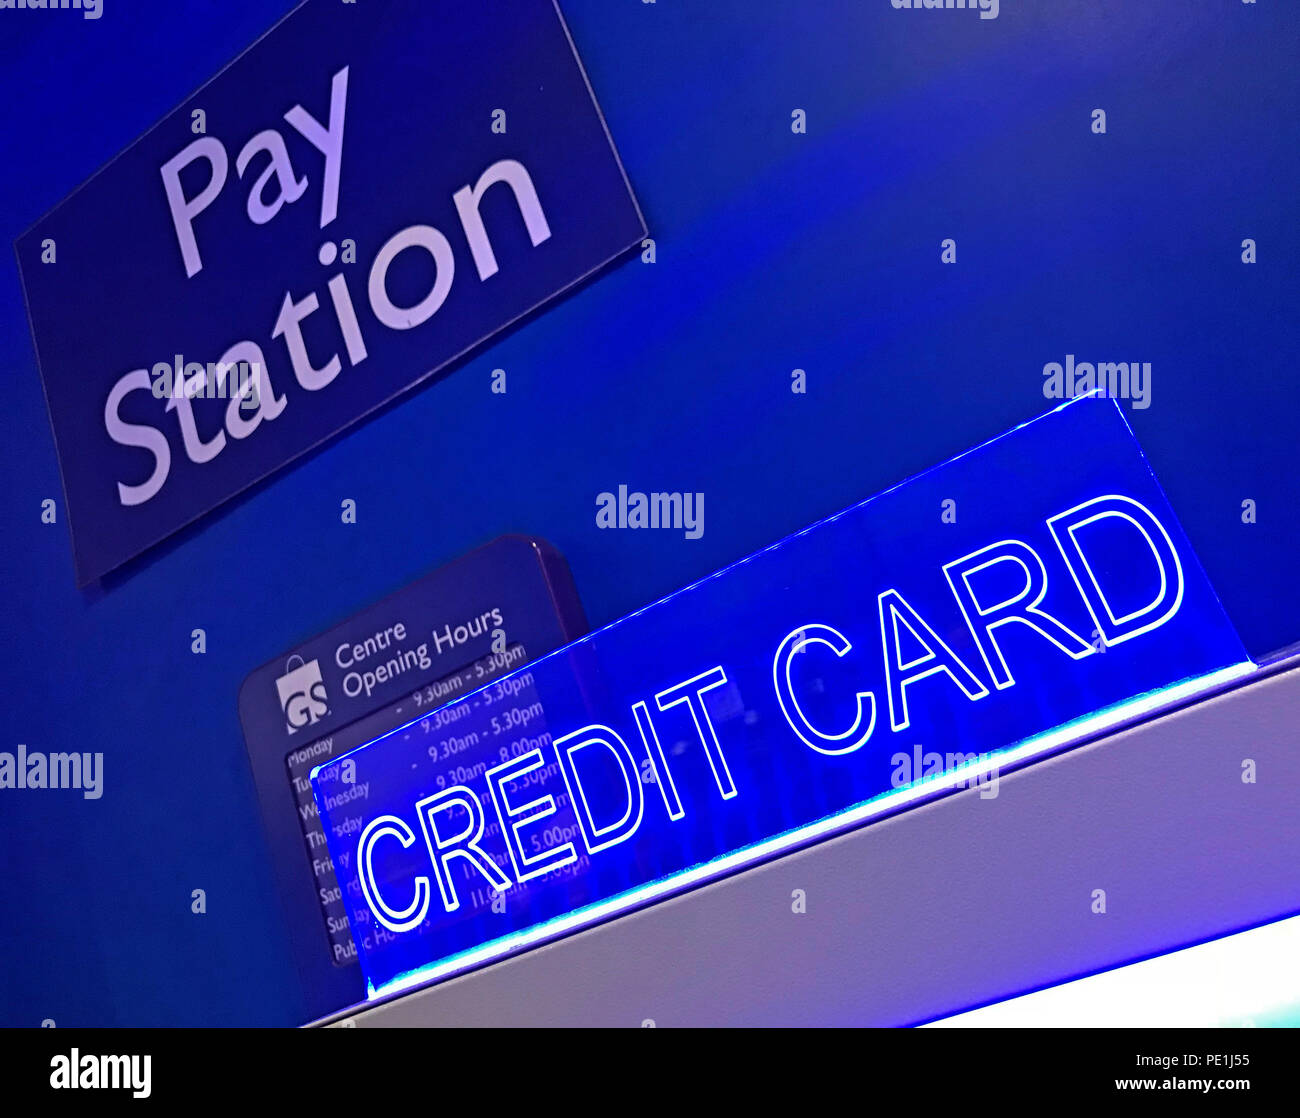 Pay Station Credit Card - Parking Payment Machine - Stock Image